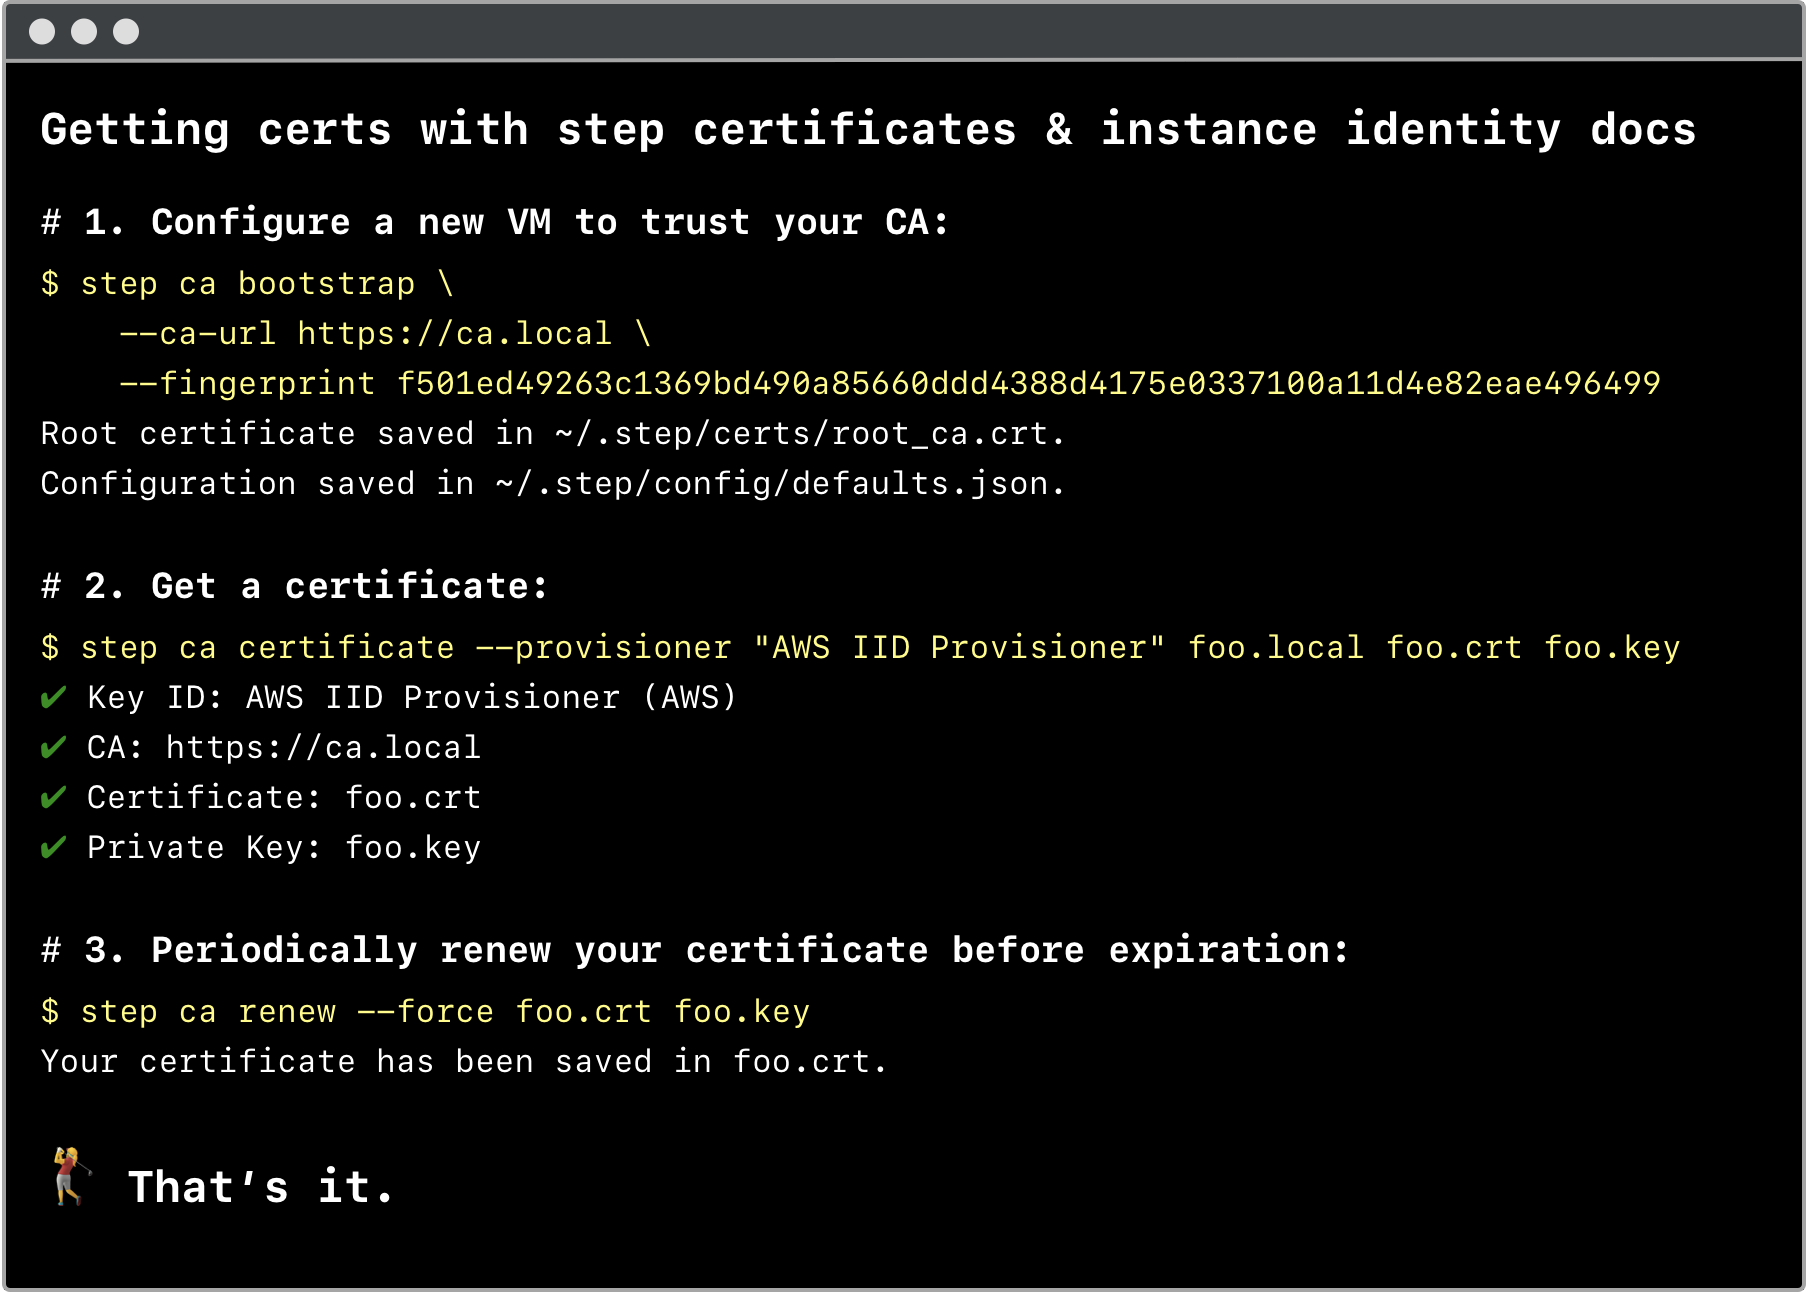 Terminal window showing example of using step certificates with instance identity documents to get a certificate